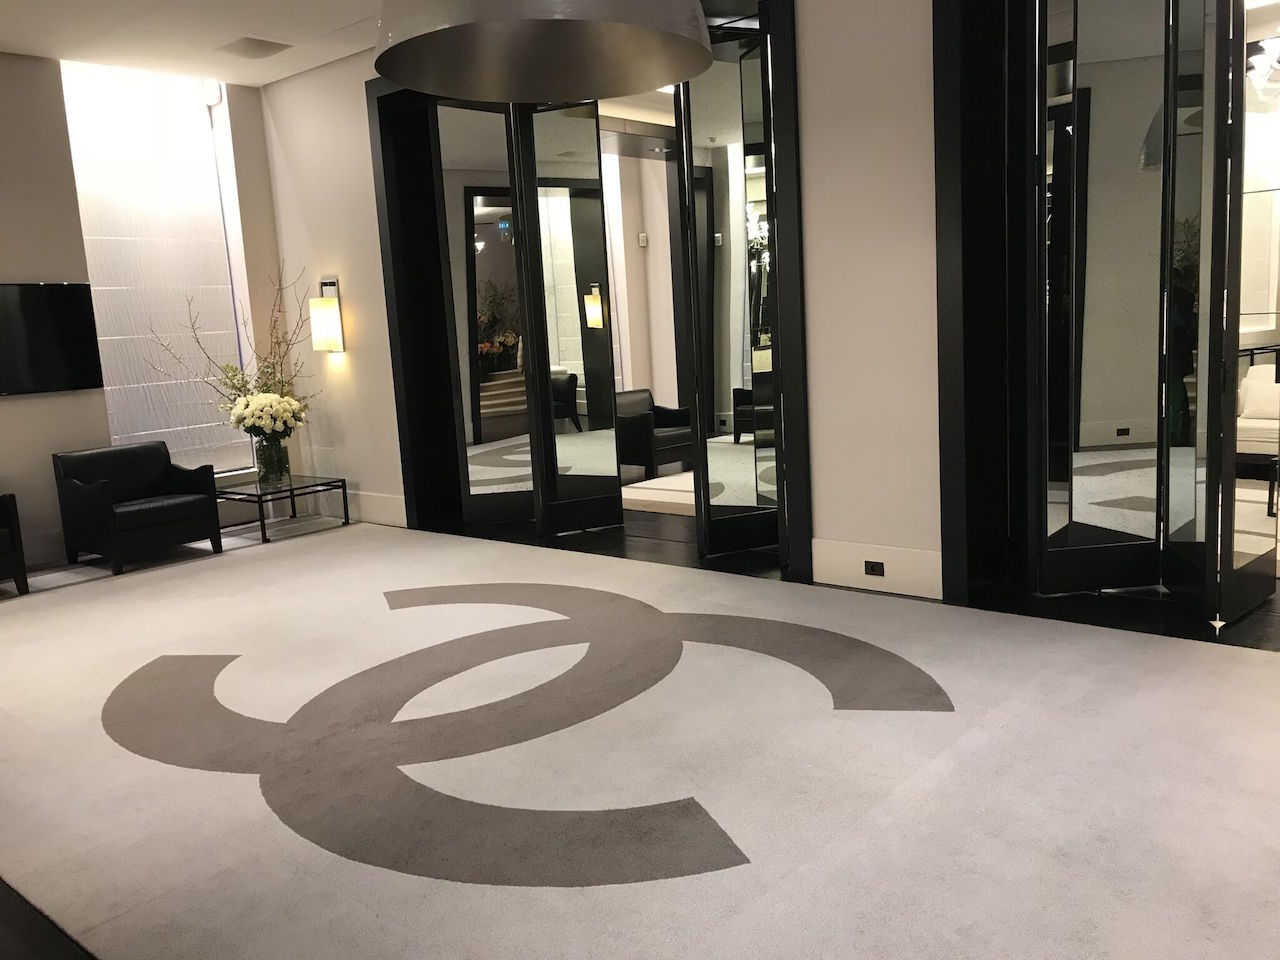 The entryway to Chanel's apartment